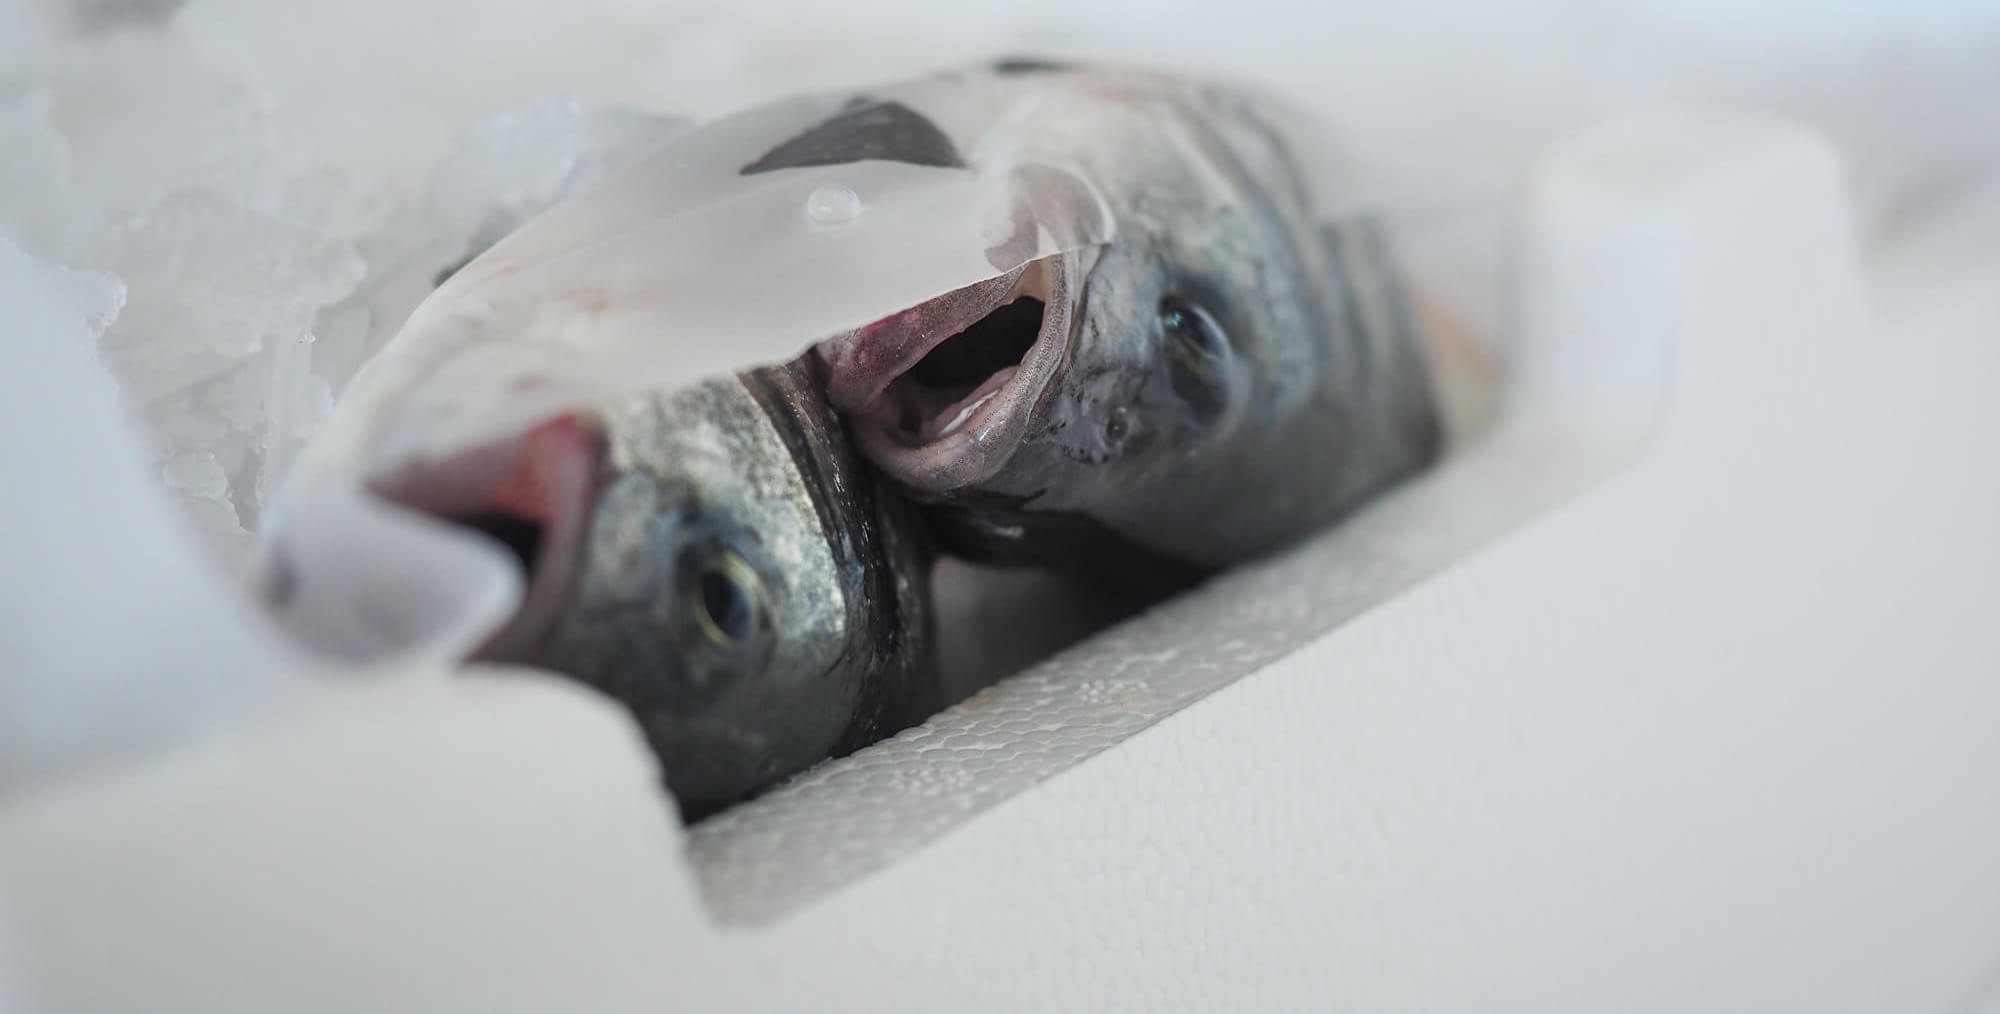 Two fish suffocating